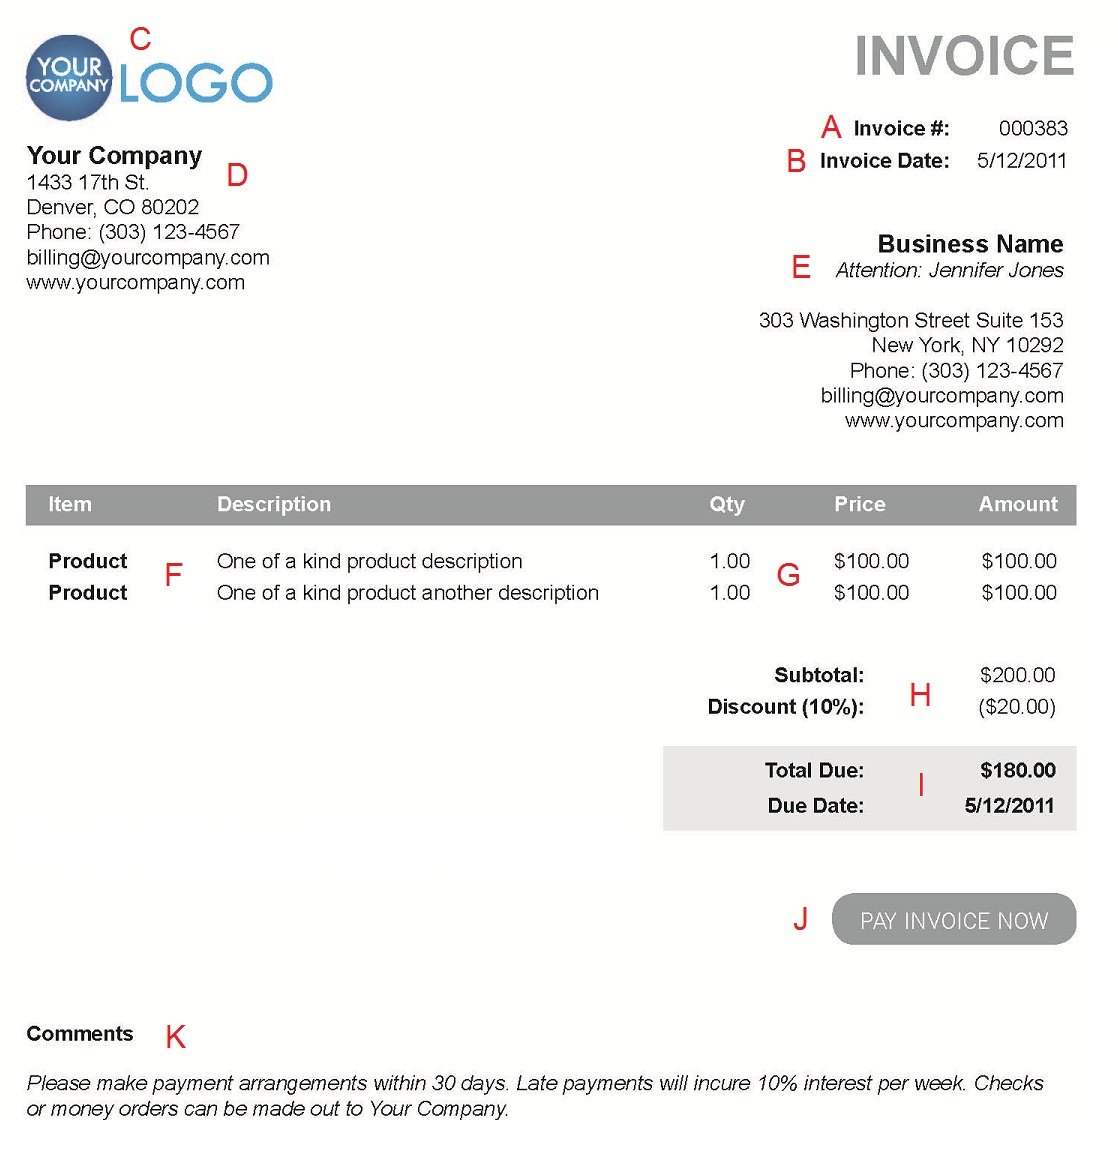 Coolmathgamesus  Fascinating The  Different Sections Of An Electronic Payment Invoice With Remarkable A  With Easy On The Eye Australian Tax Invoice Template Excel Also Invoice Order Form In Addition Invoice Pad Printing And Free Invoice Template Download Pdf As Well As Sales Invoices Definition Additionally Pi Purchase Invoice From Paysimplecom With Coolmathgamesus  Remarkable The  Different Sections Of An Electronic Payment Invoice With Easy On The Eye A  And Fascinating Australian Tax Invoice Template Excel Also Invoice Order Form In Addition Invoice Pad Printing From Paysimplecom